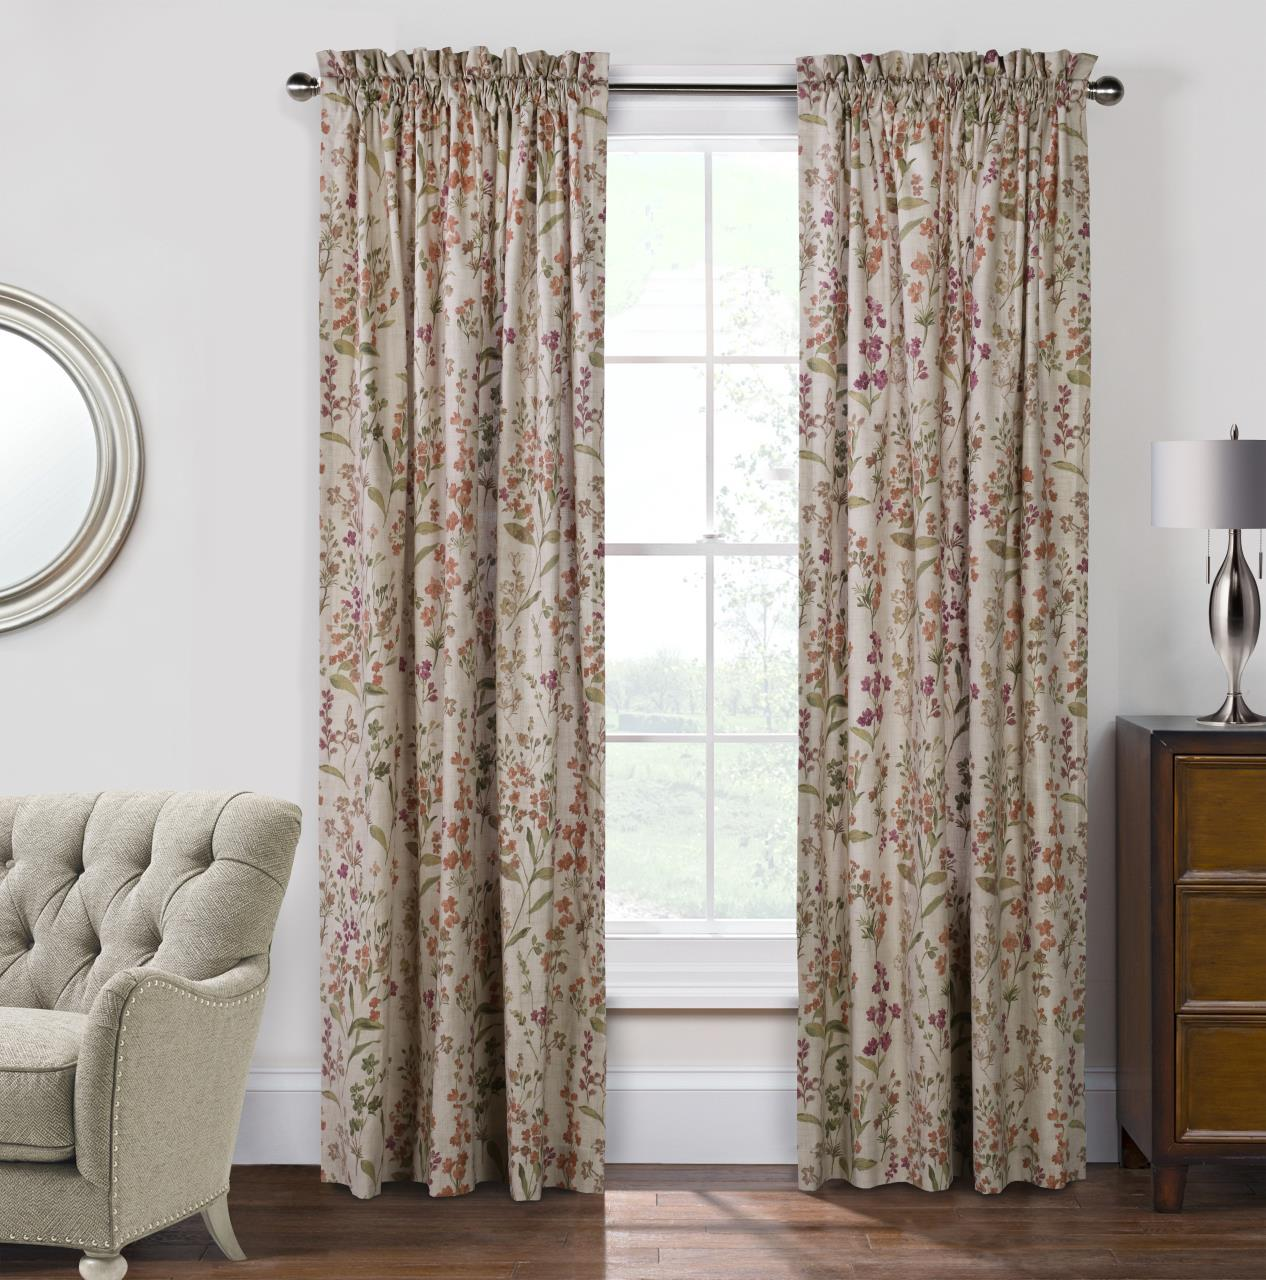 Rockport Floral Curtains